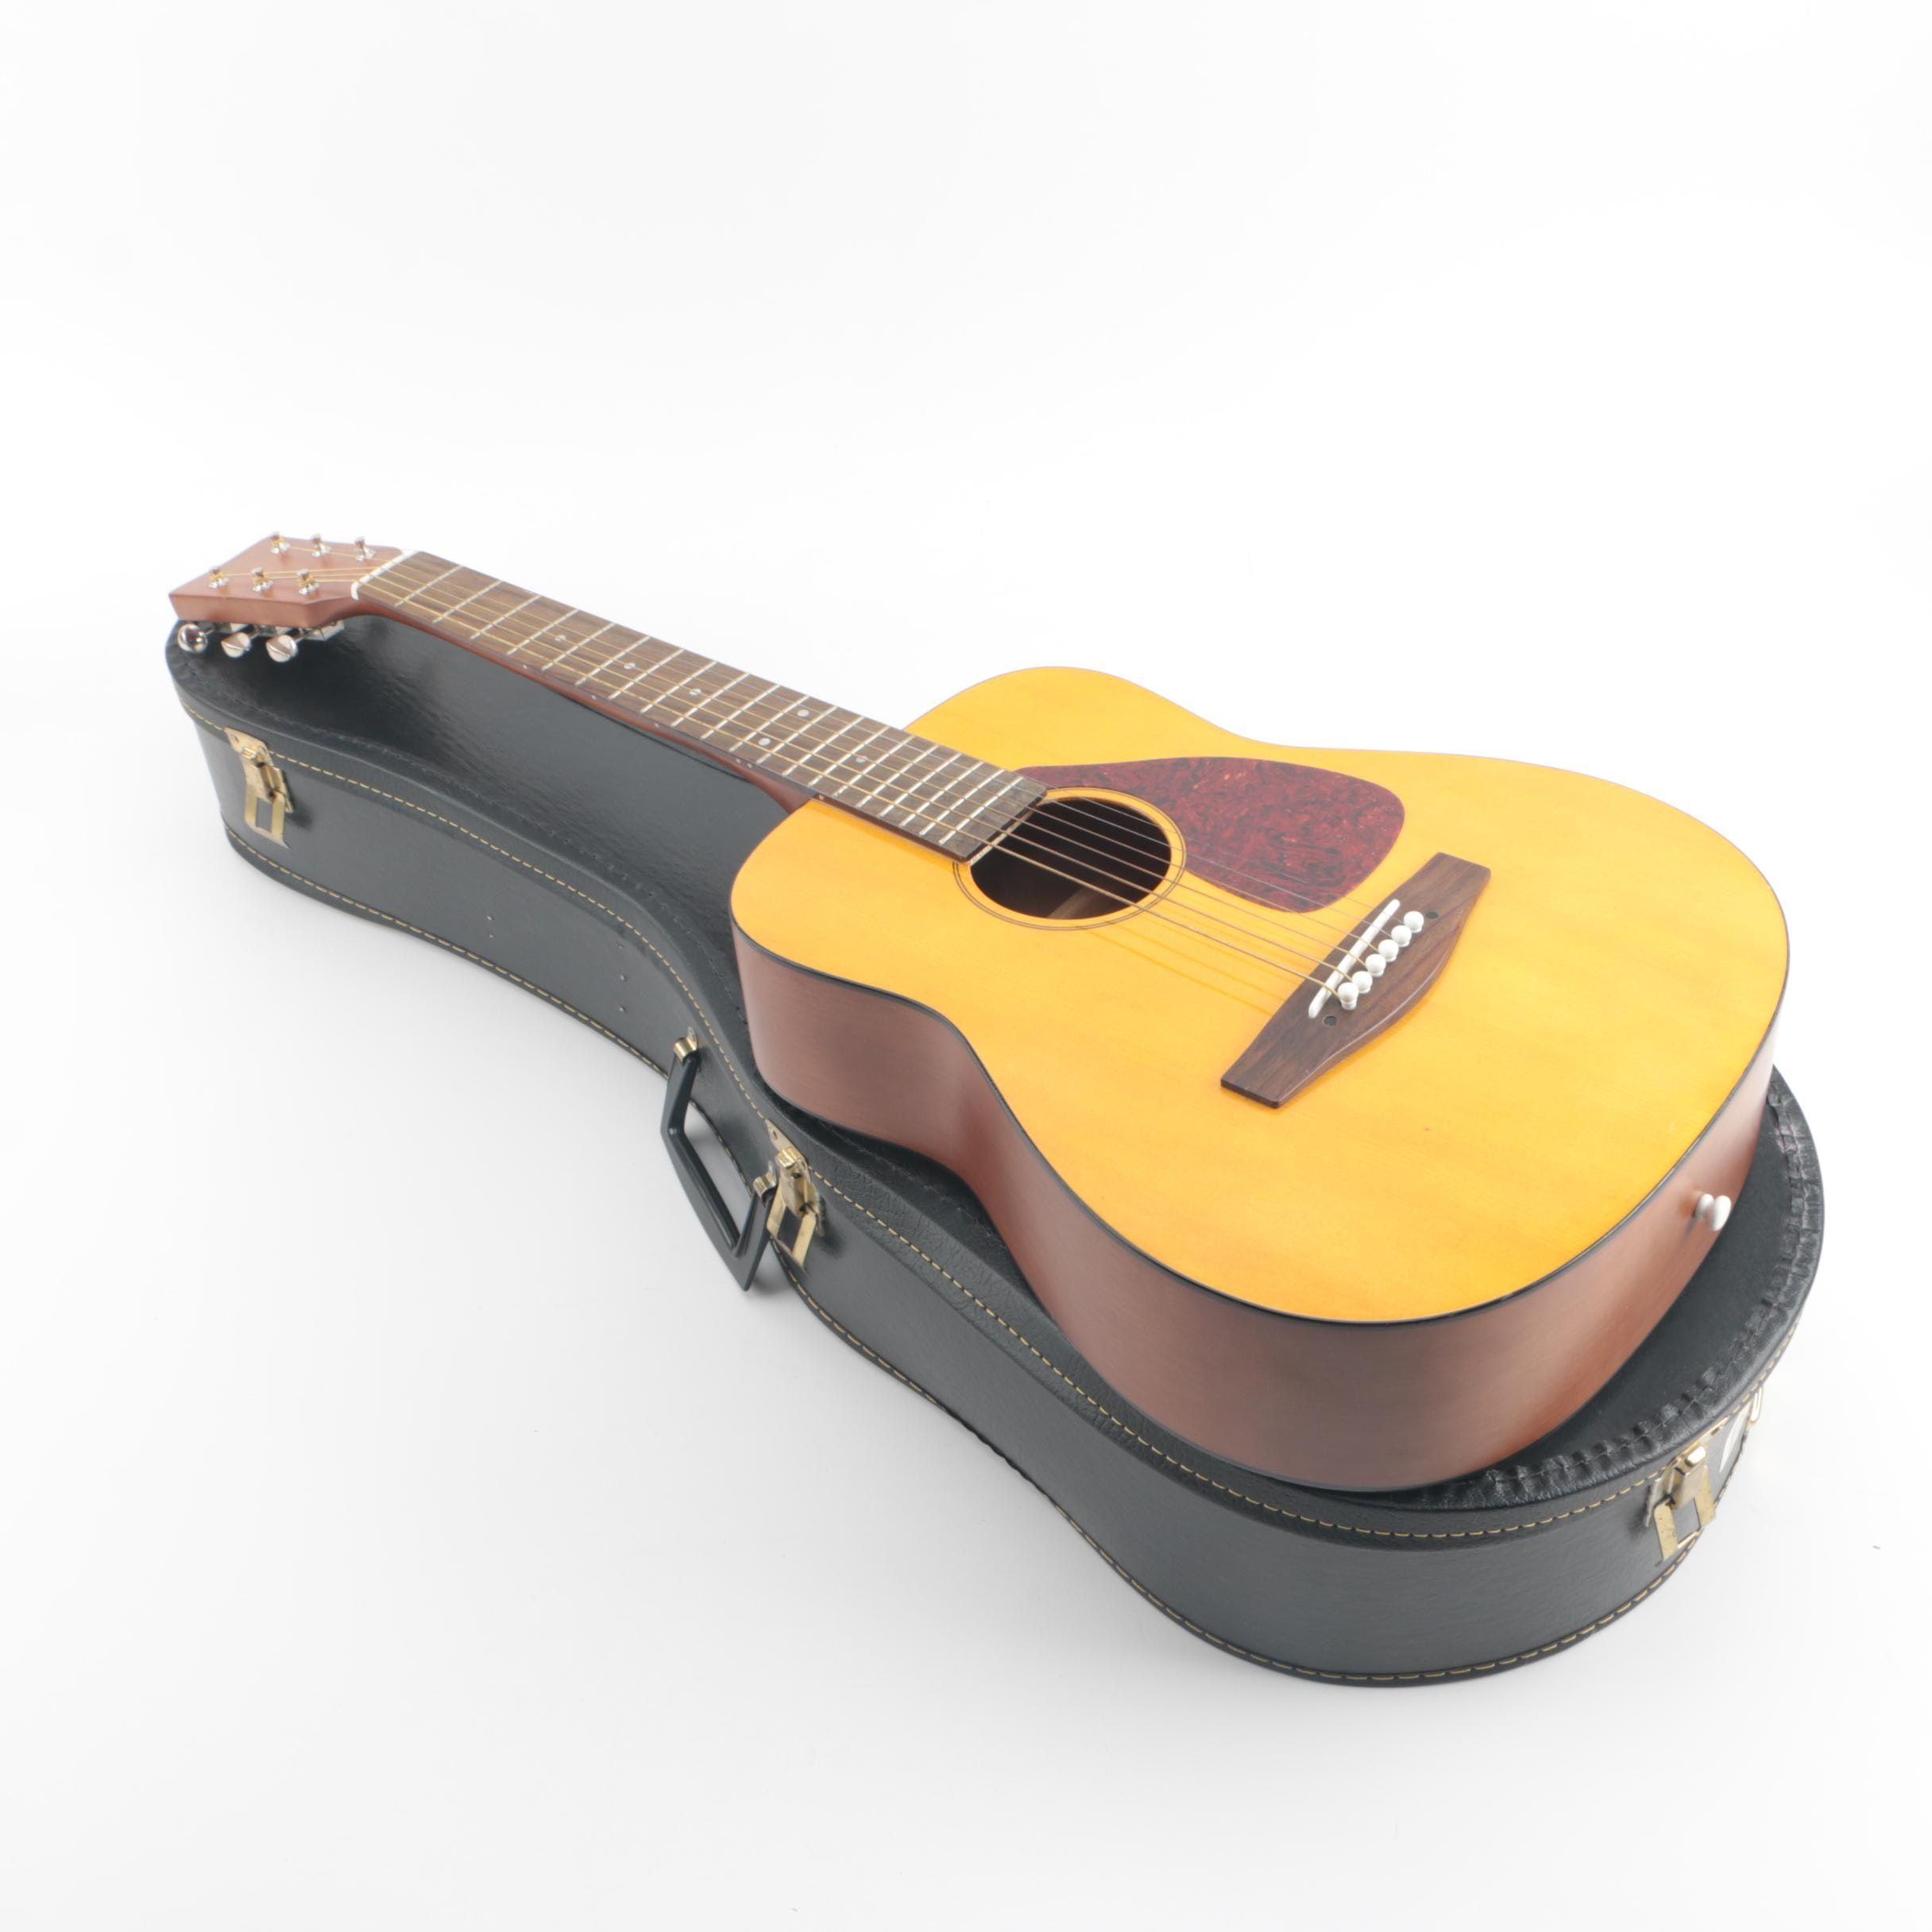 Yamaha Junior Acoustic Guitar with Case